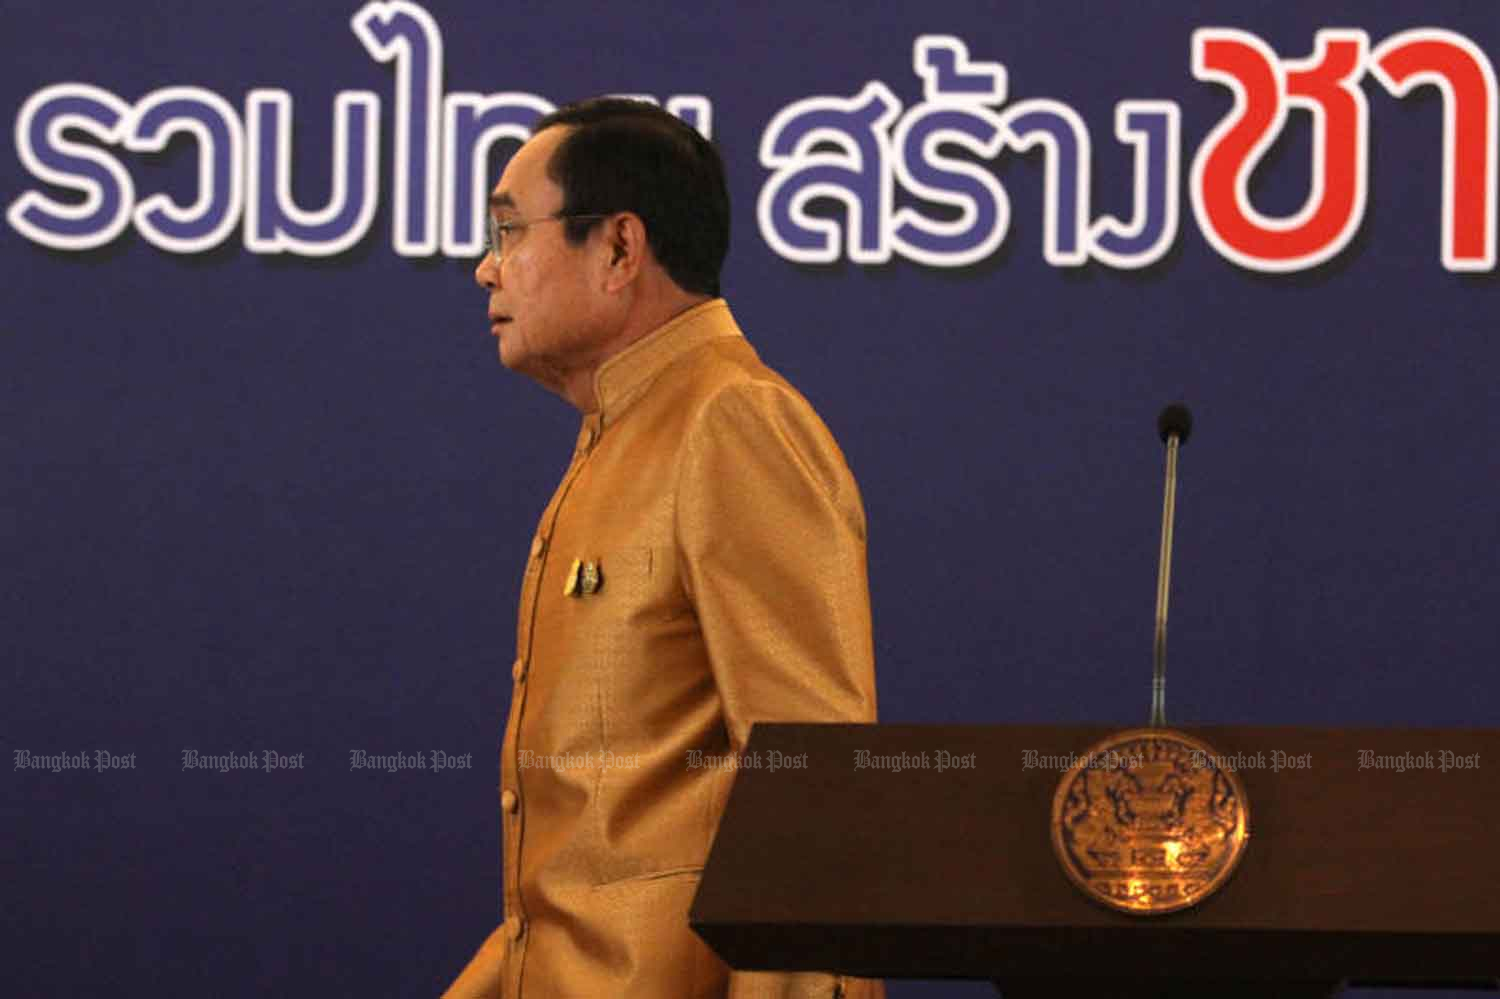 Prime Minister Prayut Chan-o-cha leaves his podium just after being asked about coup rumours, at Government House in Bangkok on Tuesday. WICHAN CHAROENKIATPAKUL